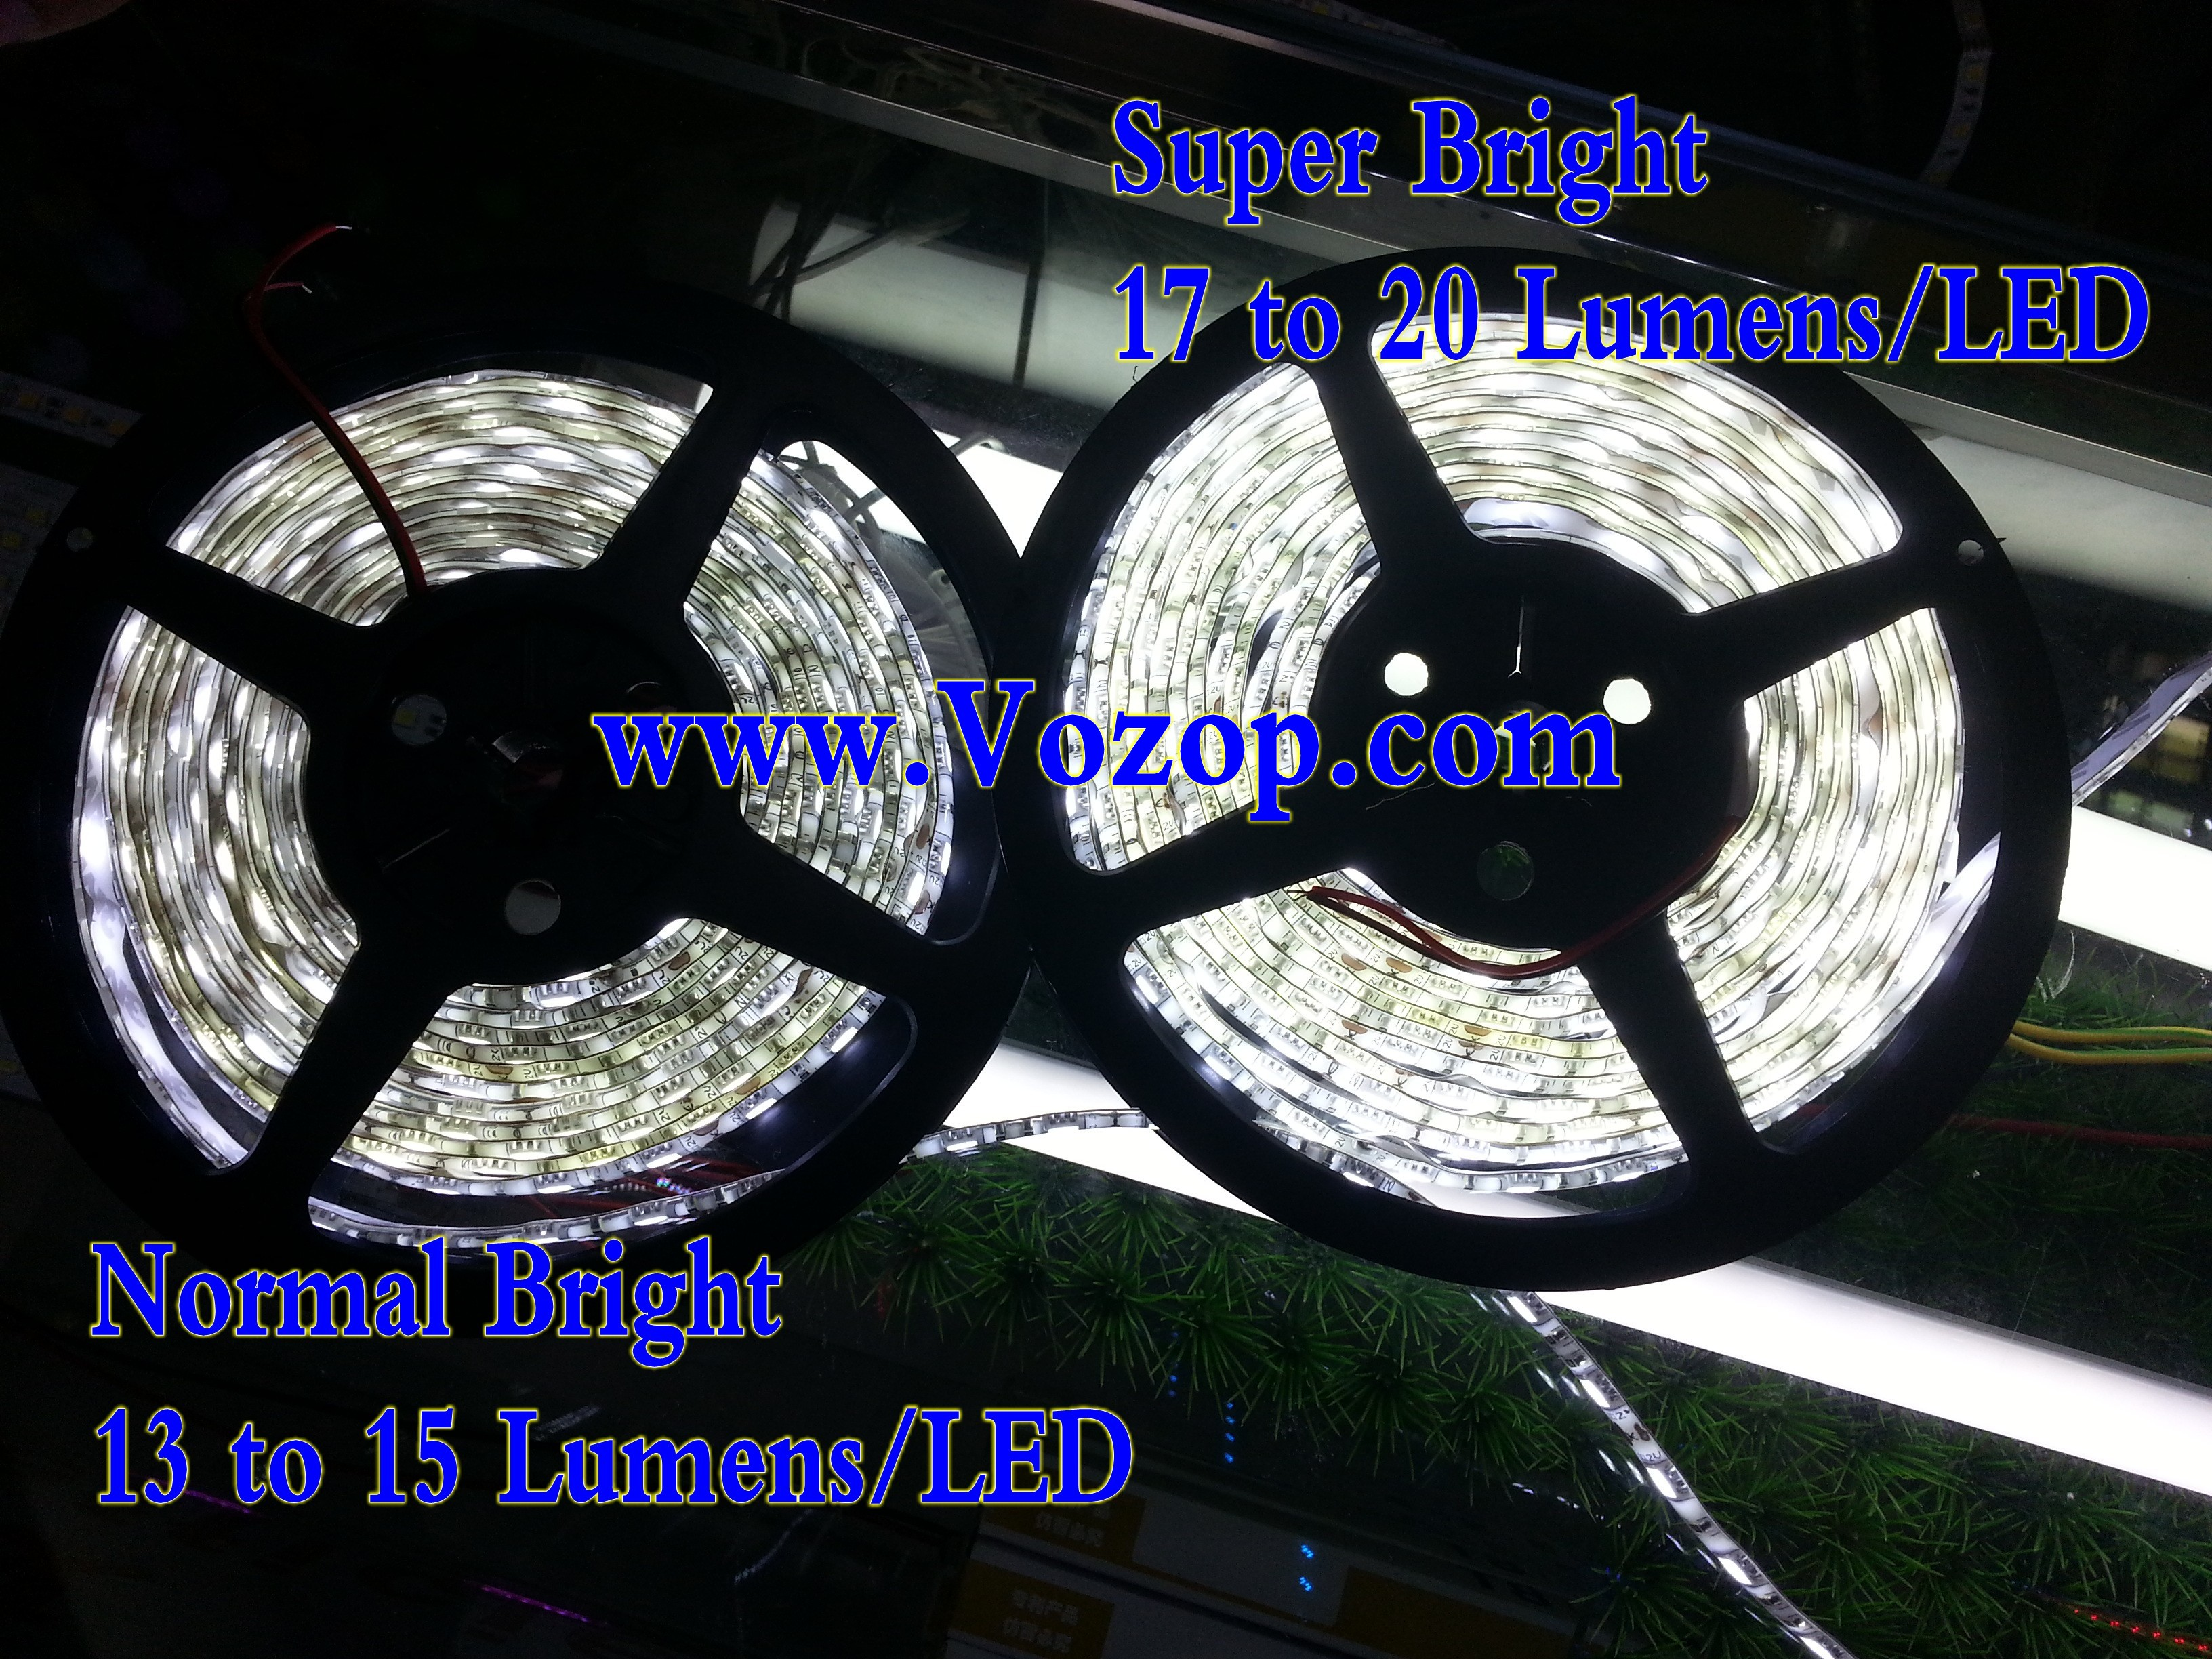 Ultra_Bright_SMD5050_5M_300_LEDs_Pure_White_12v_LED_strip_Lights_Waterproof